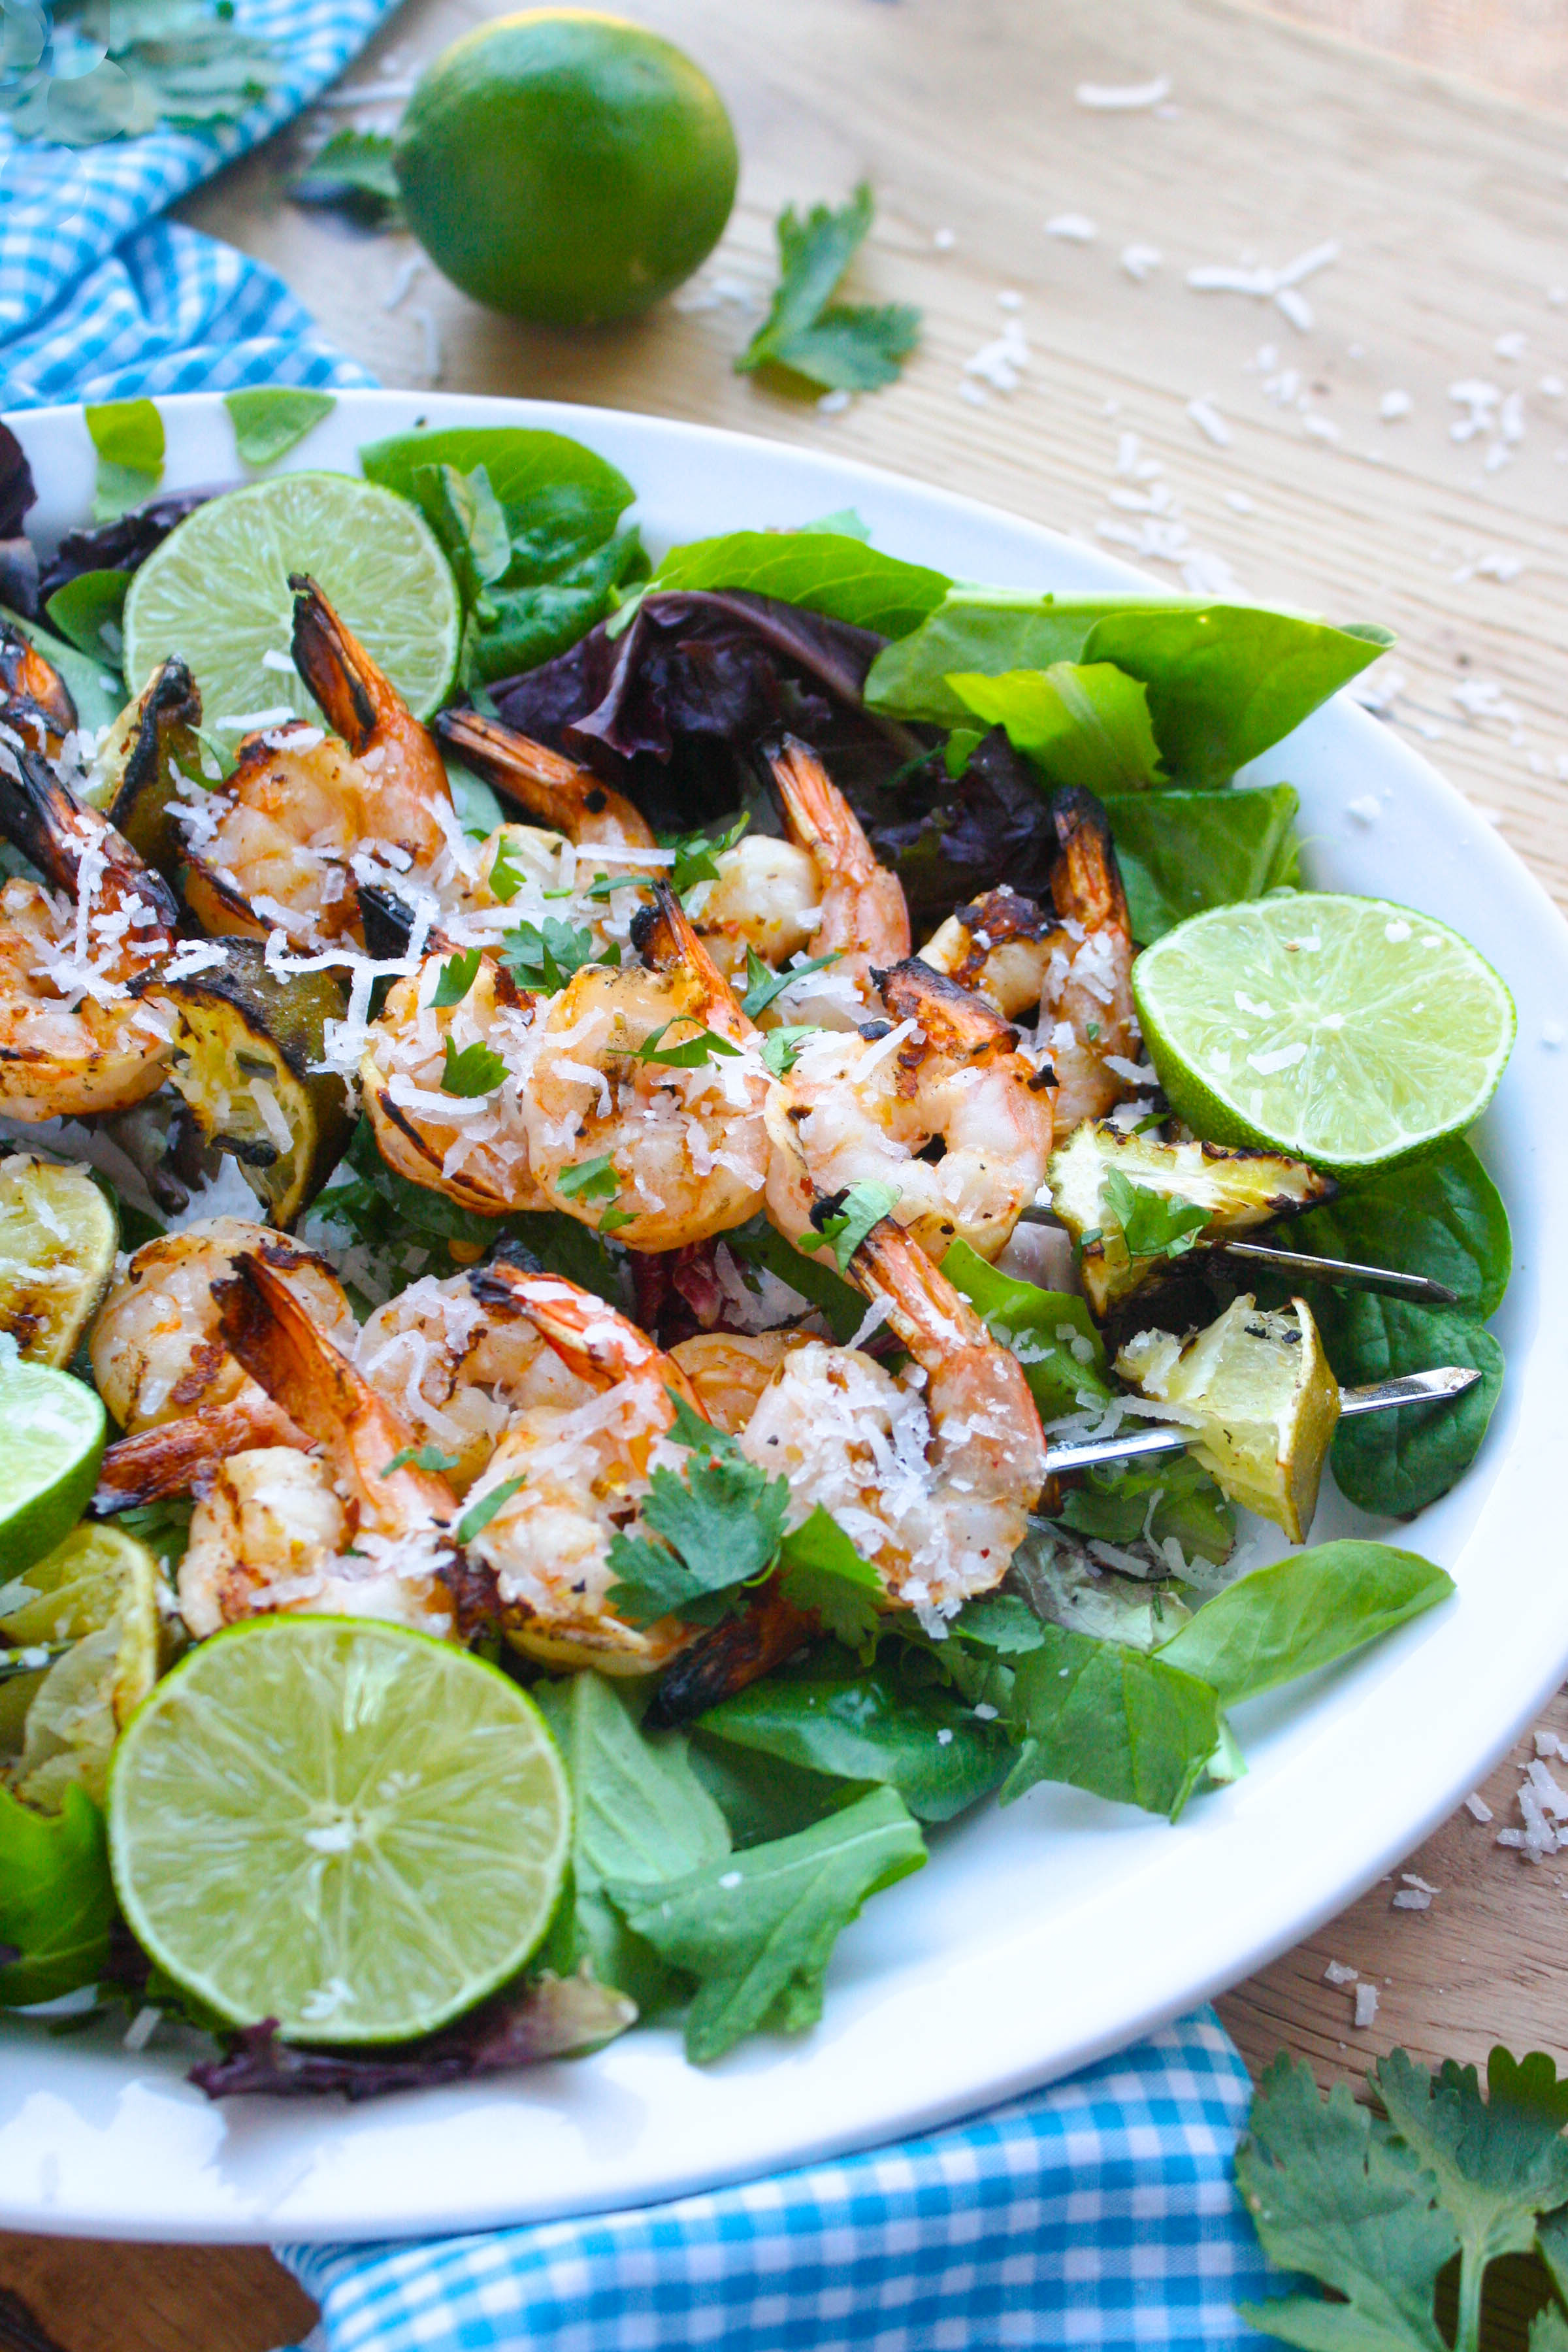 Grilled Spicy Coconut-Lime Shrimp Skewers make a fabulous meal. They're perfect to make during grilling season!